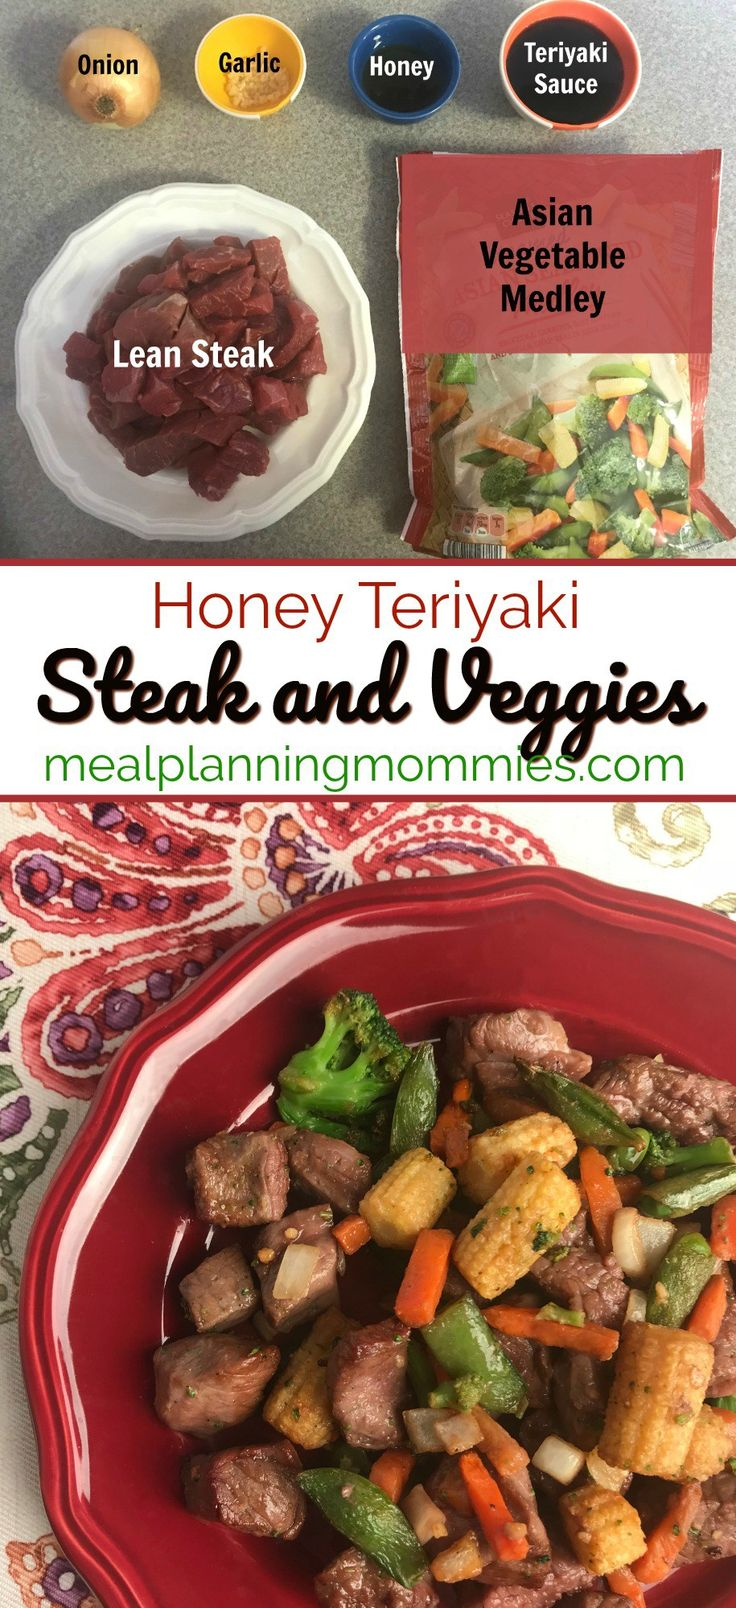 This super simple Honey Teriyaki Steak and Veggies just requires 6 ingredients and 2 easy steps: Marinate and saute. Just 5 WW FreeStyle SP per serving!